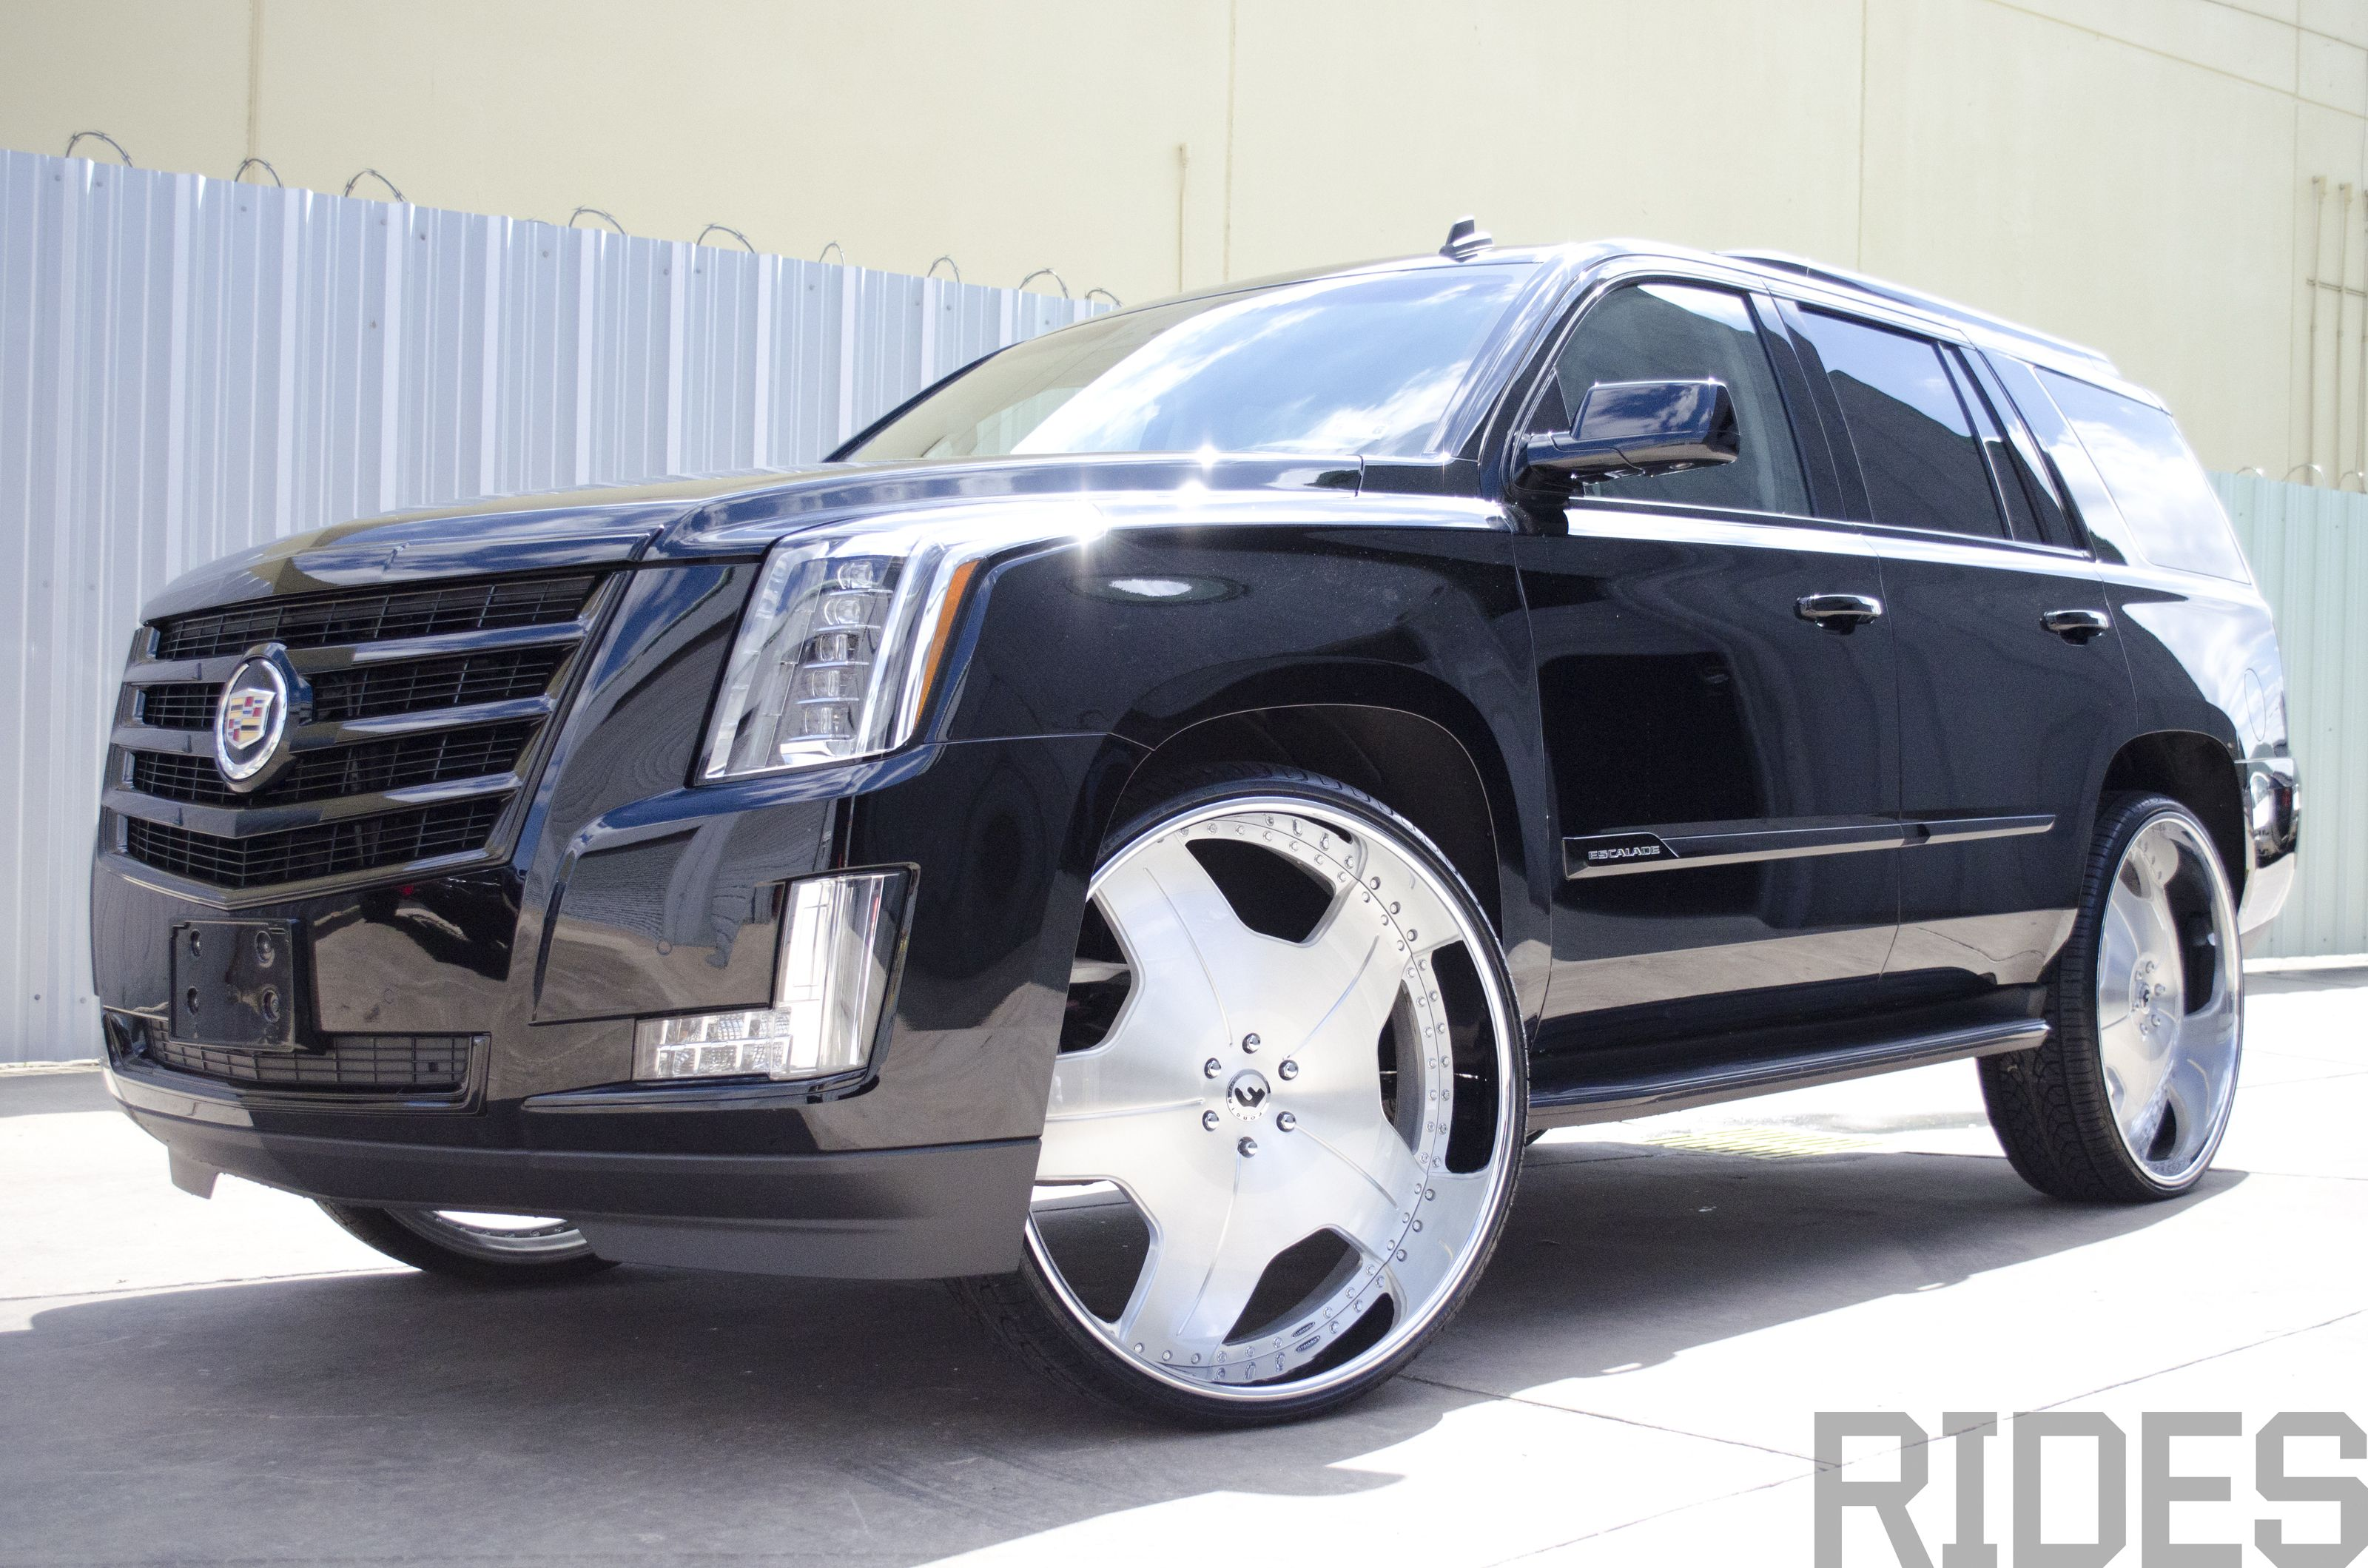 gaywheels cadillac ballsy interior is escalade esv brash